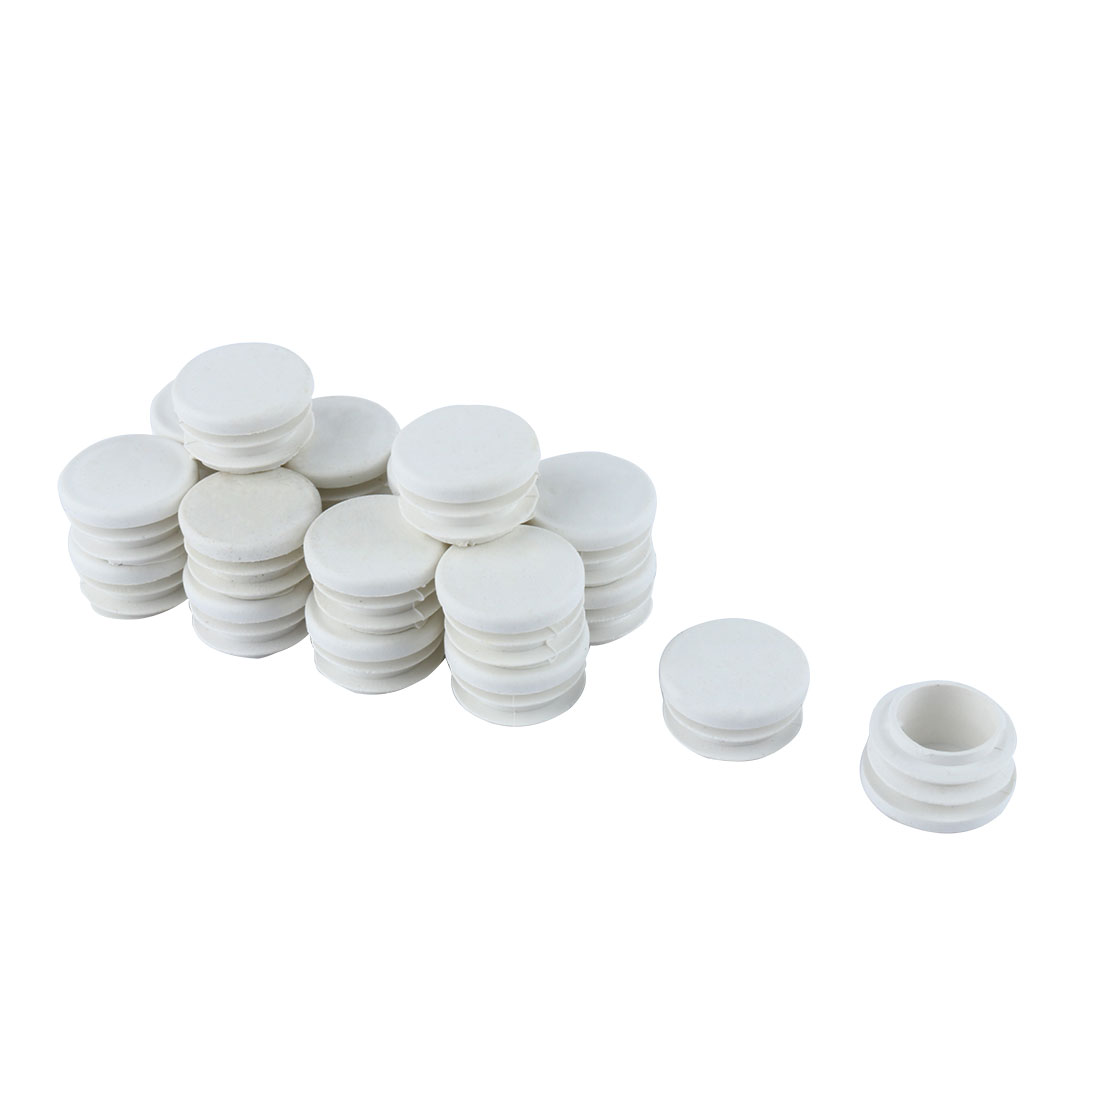 Desk Legs Plastic Round Design Tube Pipe Inserts End Caps White 28mm Dia 20pcs